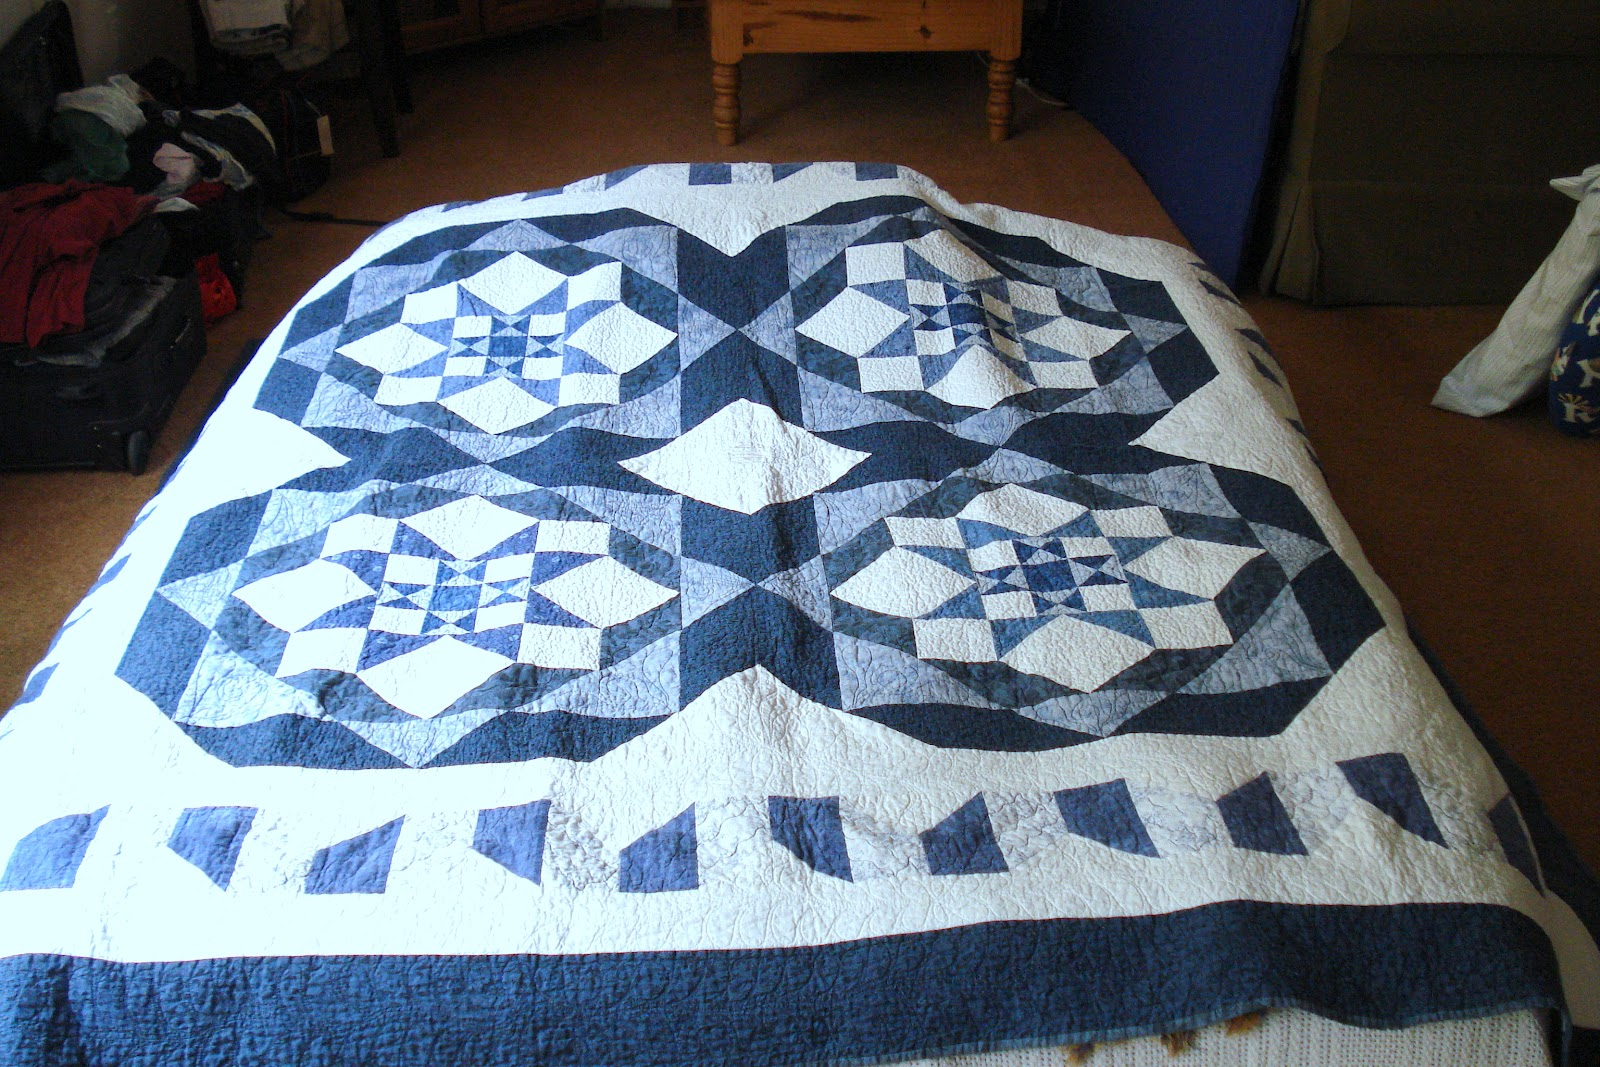 how to decide on size for border for a quilt